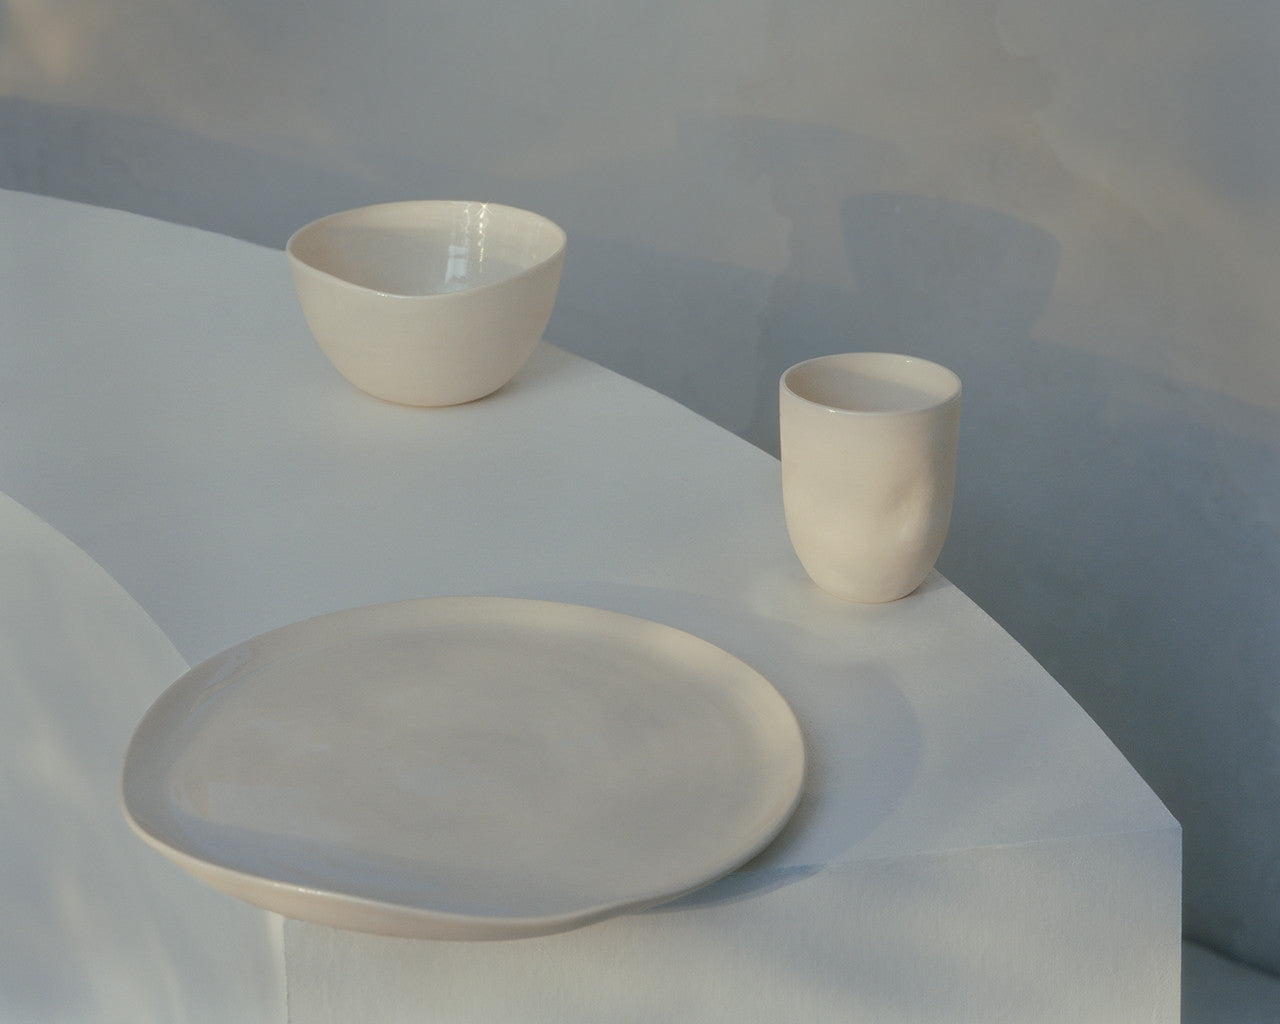 3-piece tableware set, made by hand in USA, 100% porcelain.